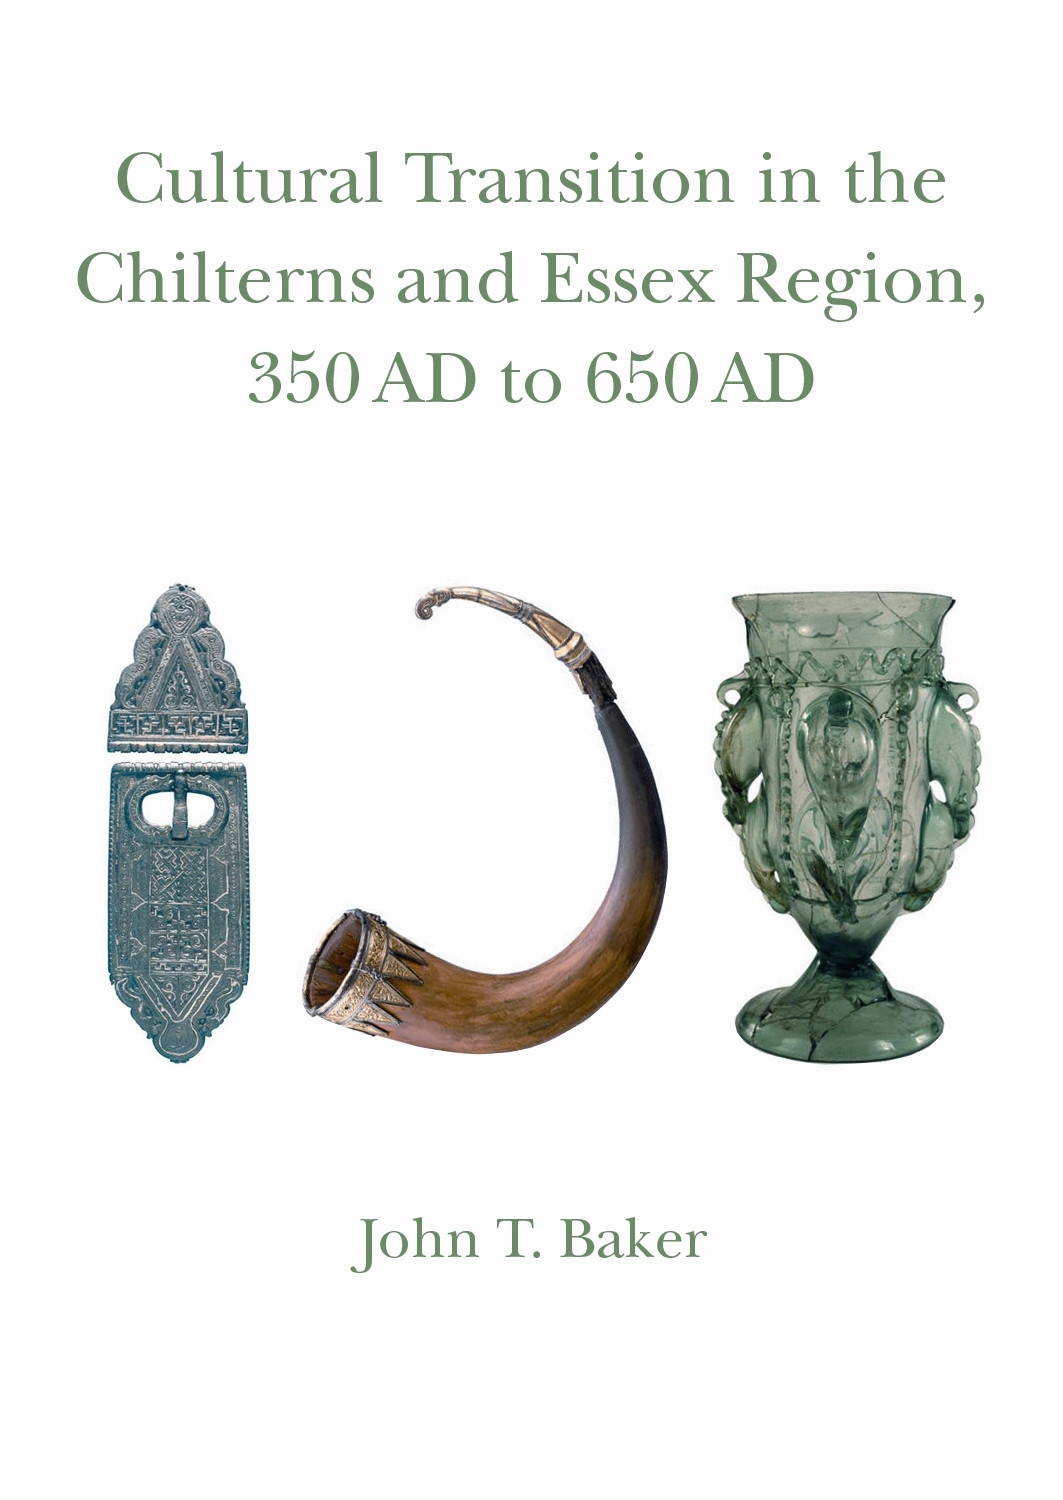 Cultural Transition in the Chilterns and Essex Region